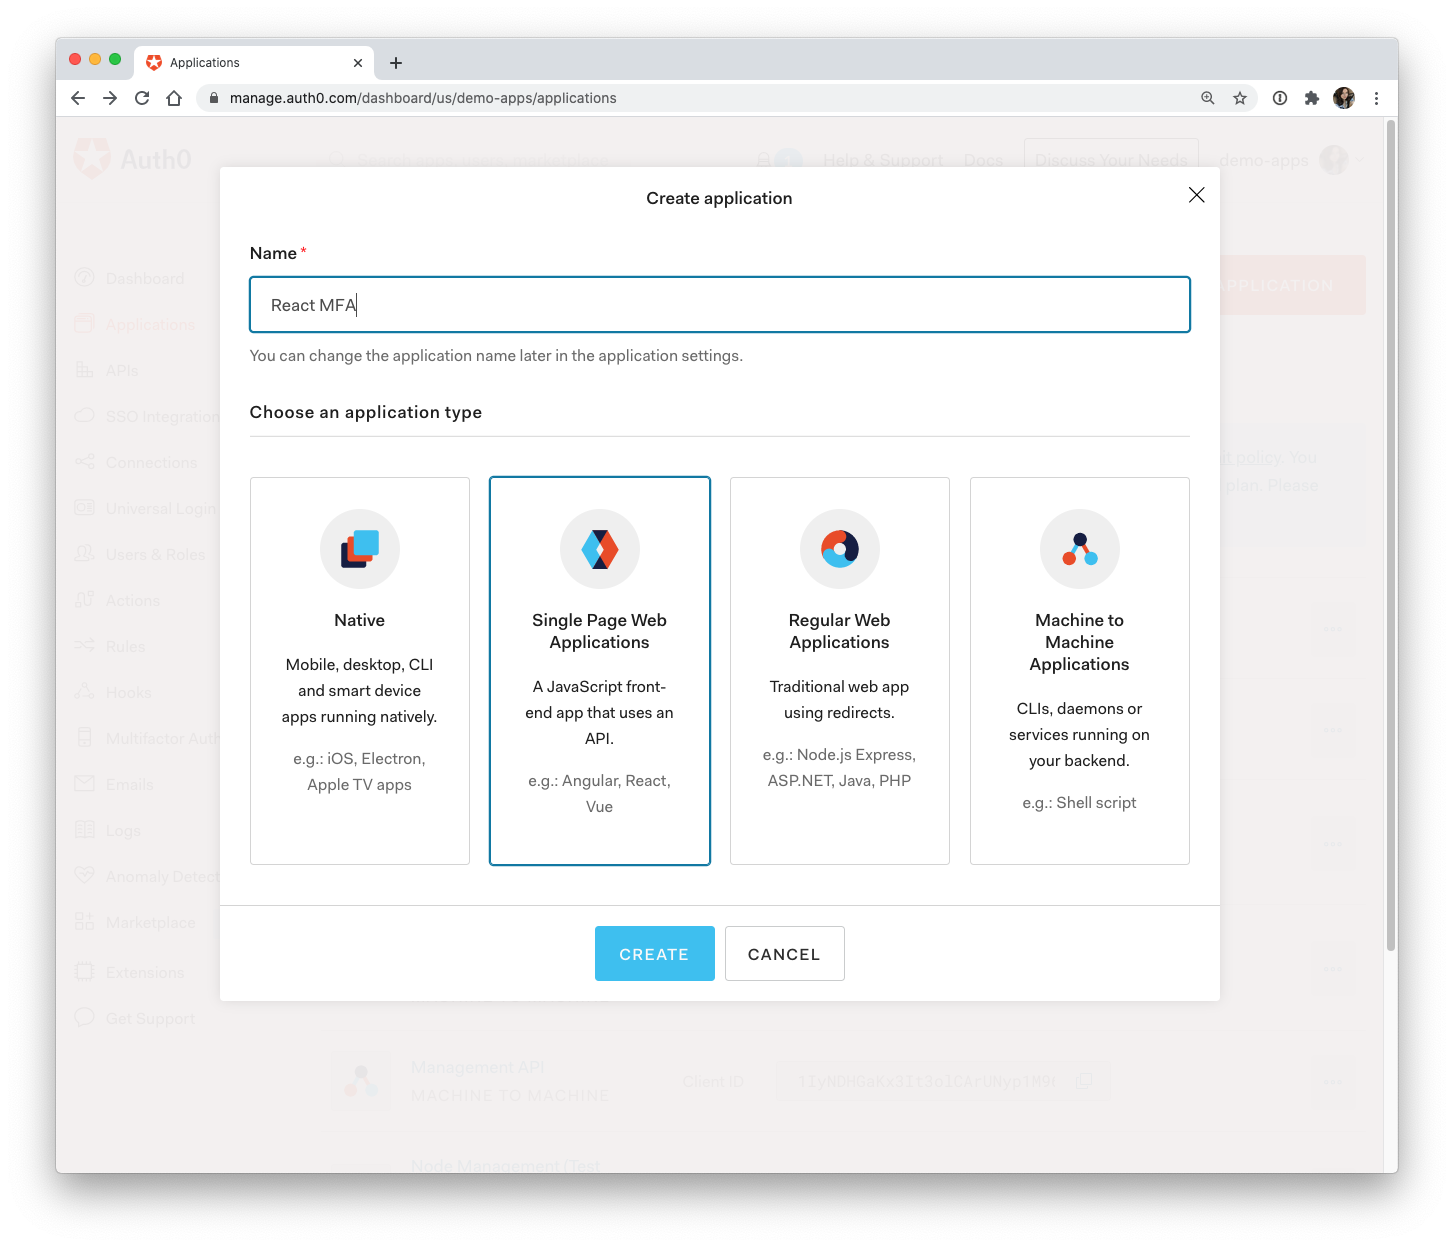 Auth0 new application